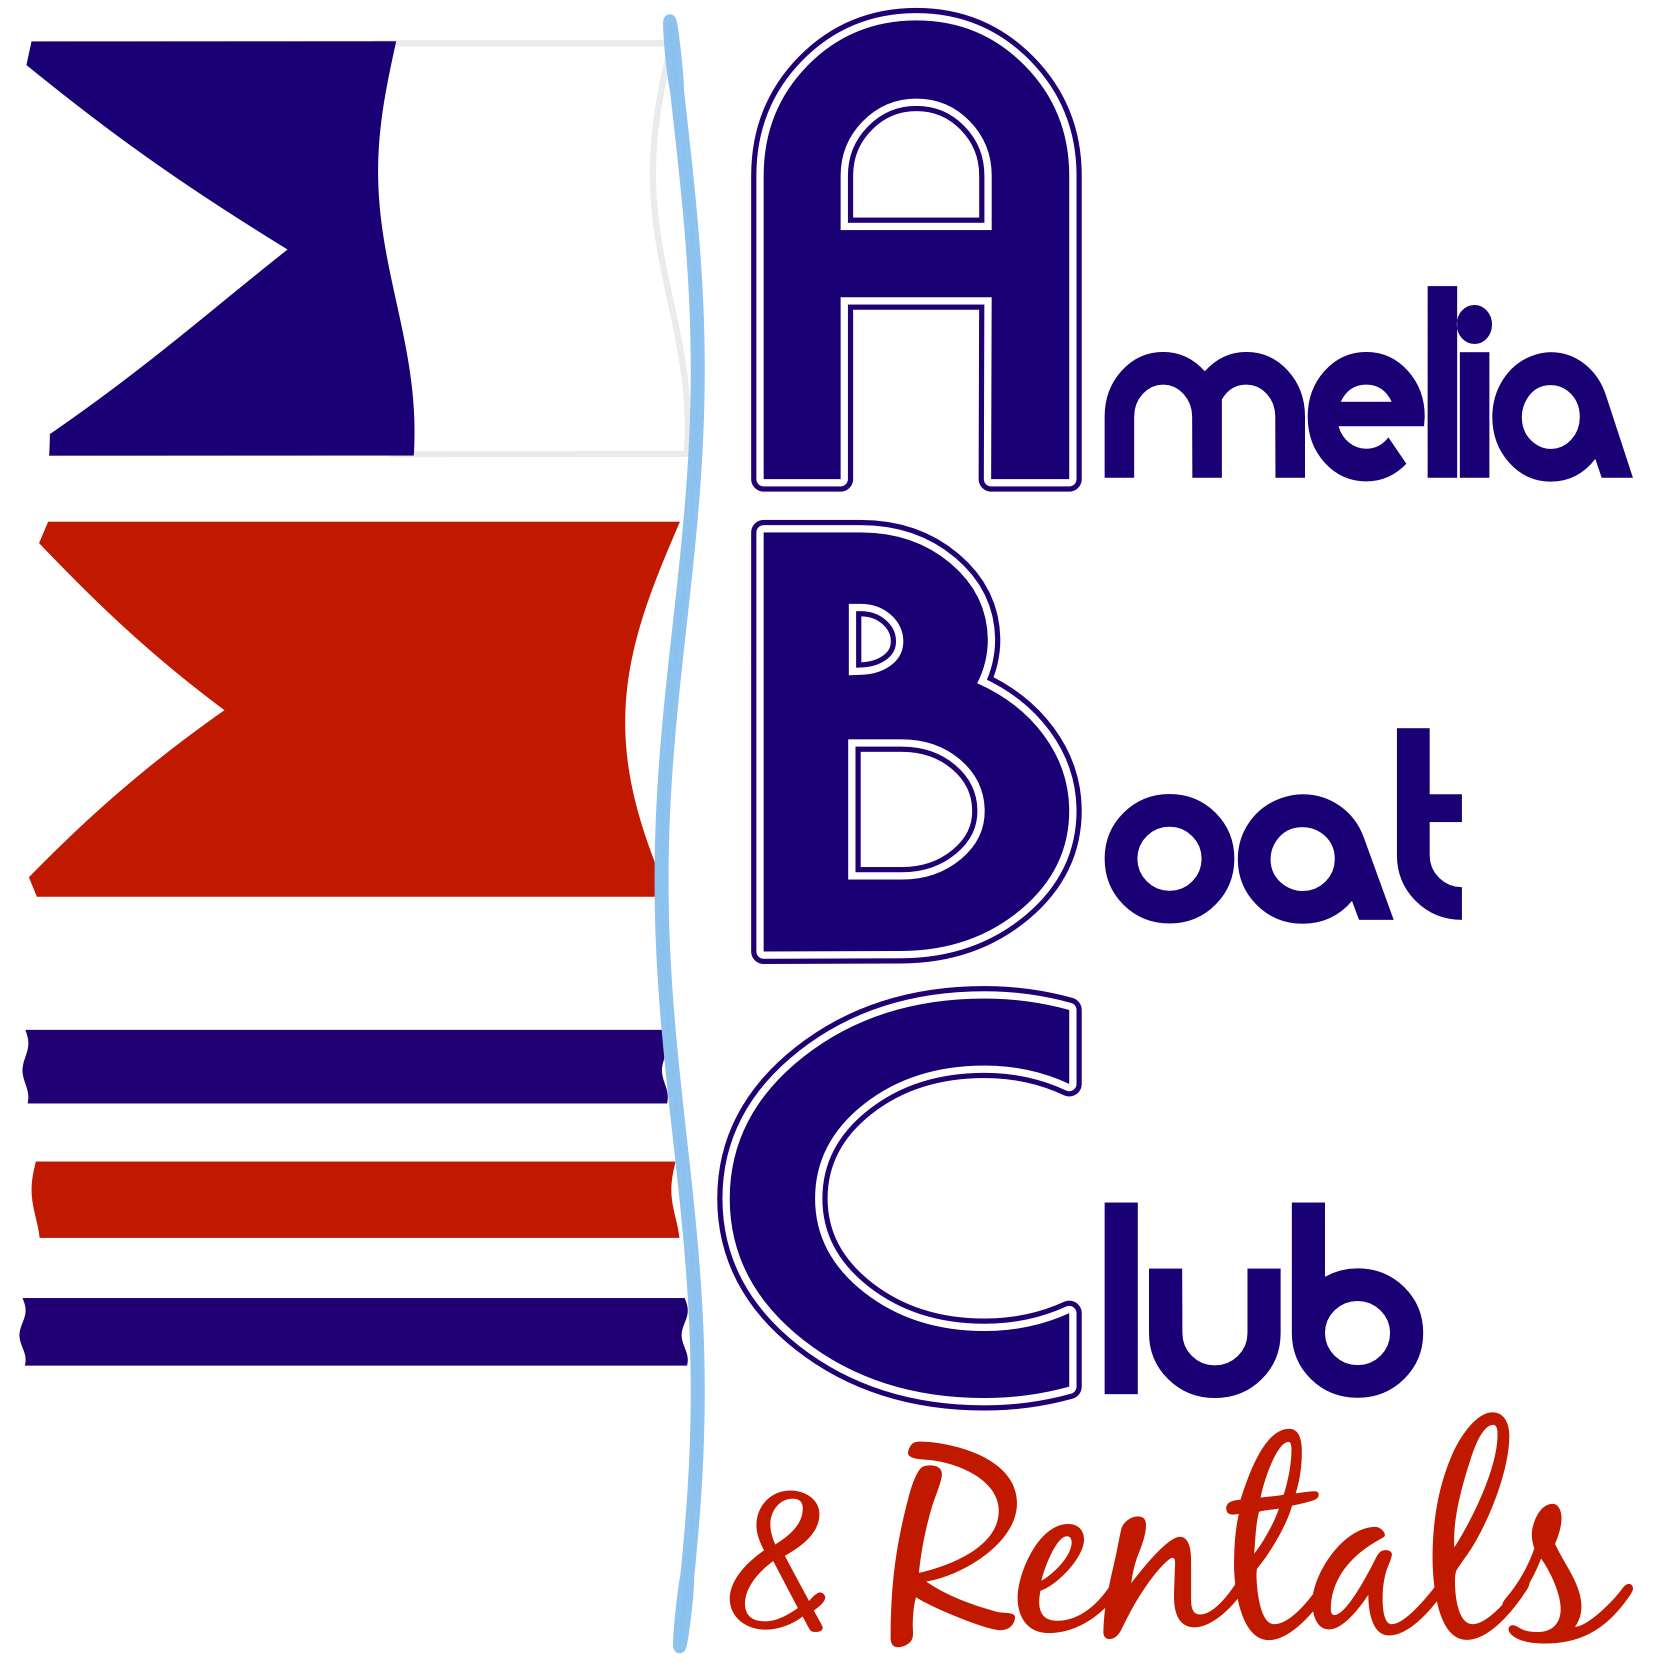 amelia island boating florida